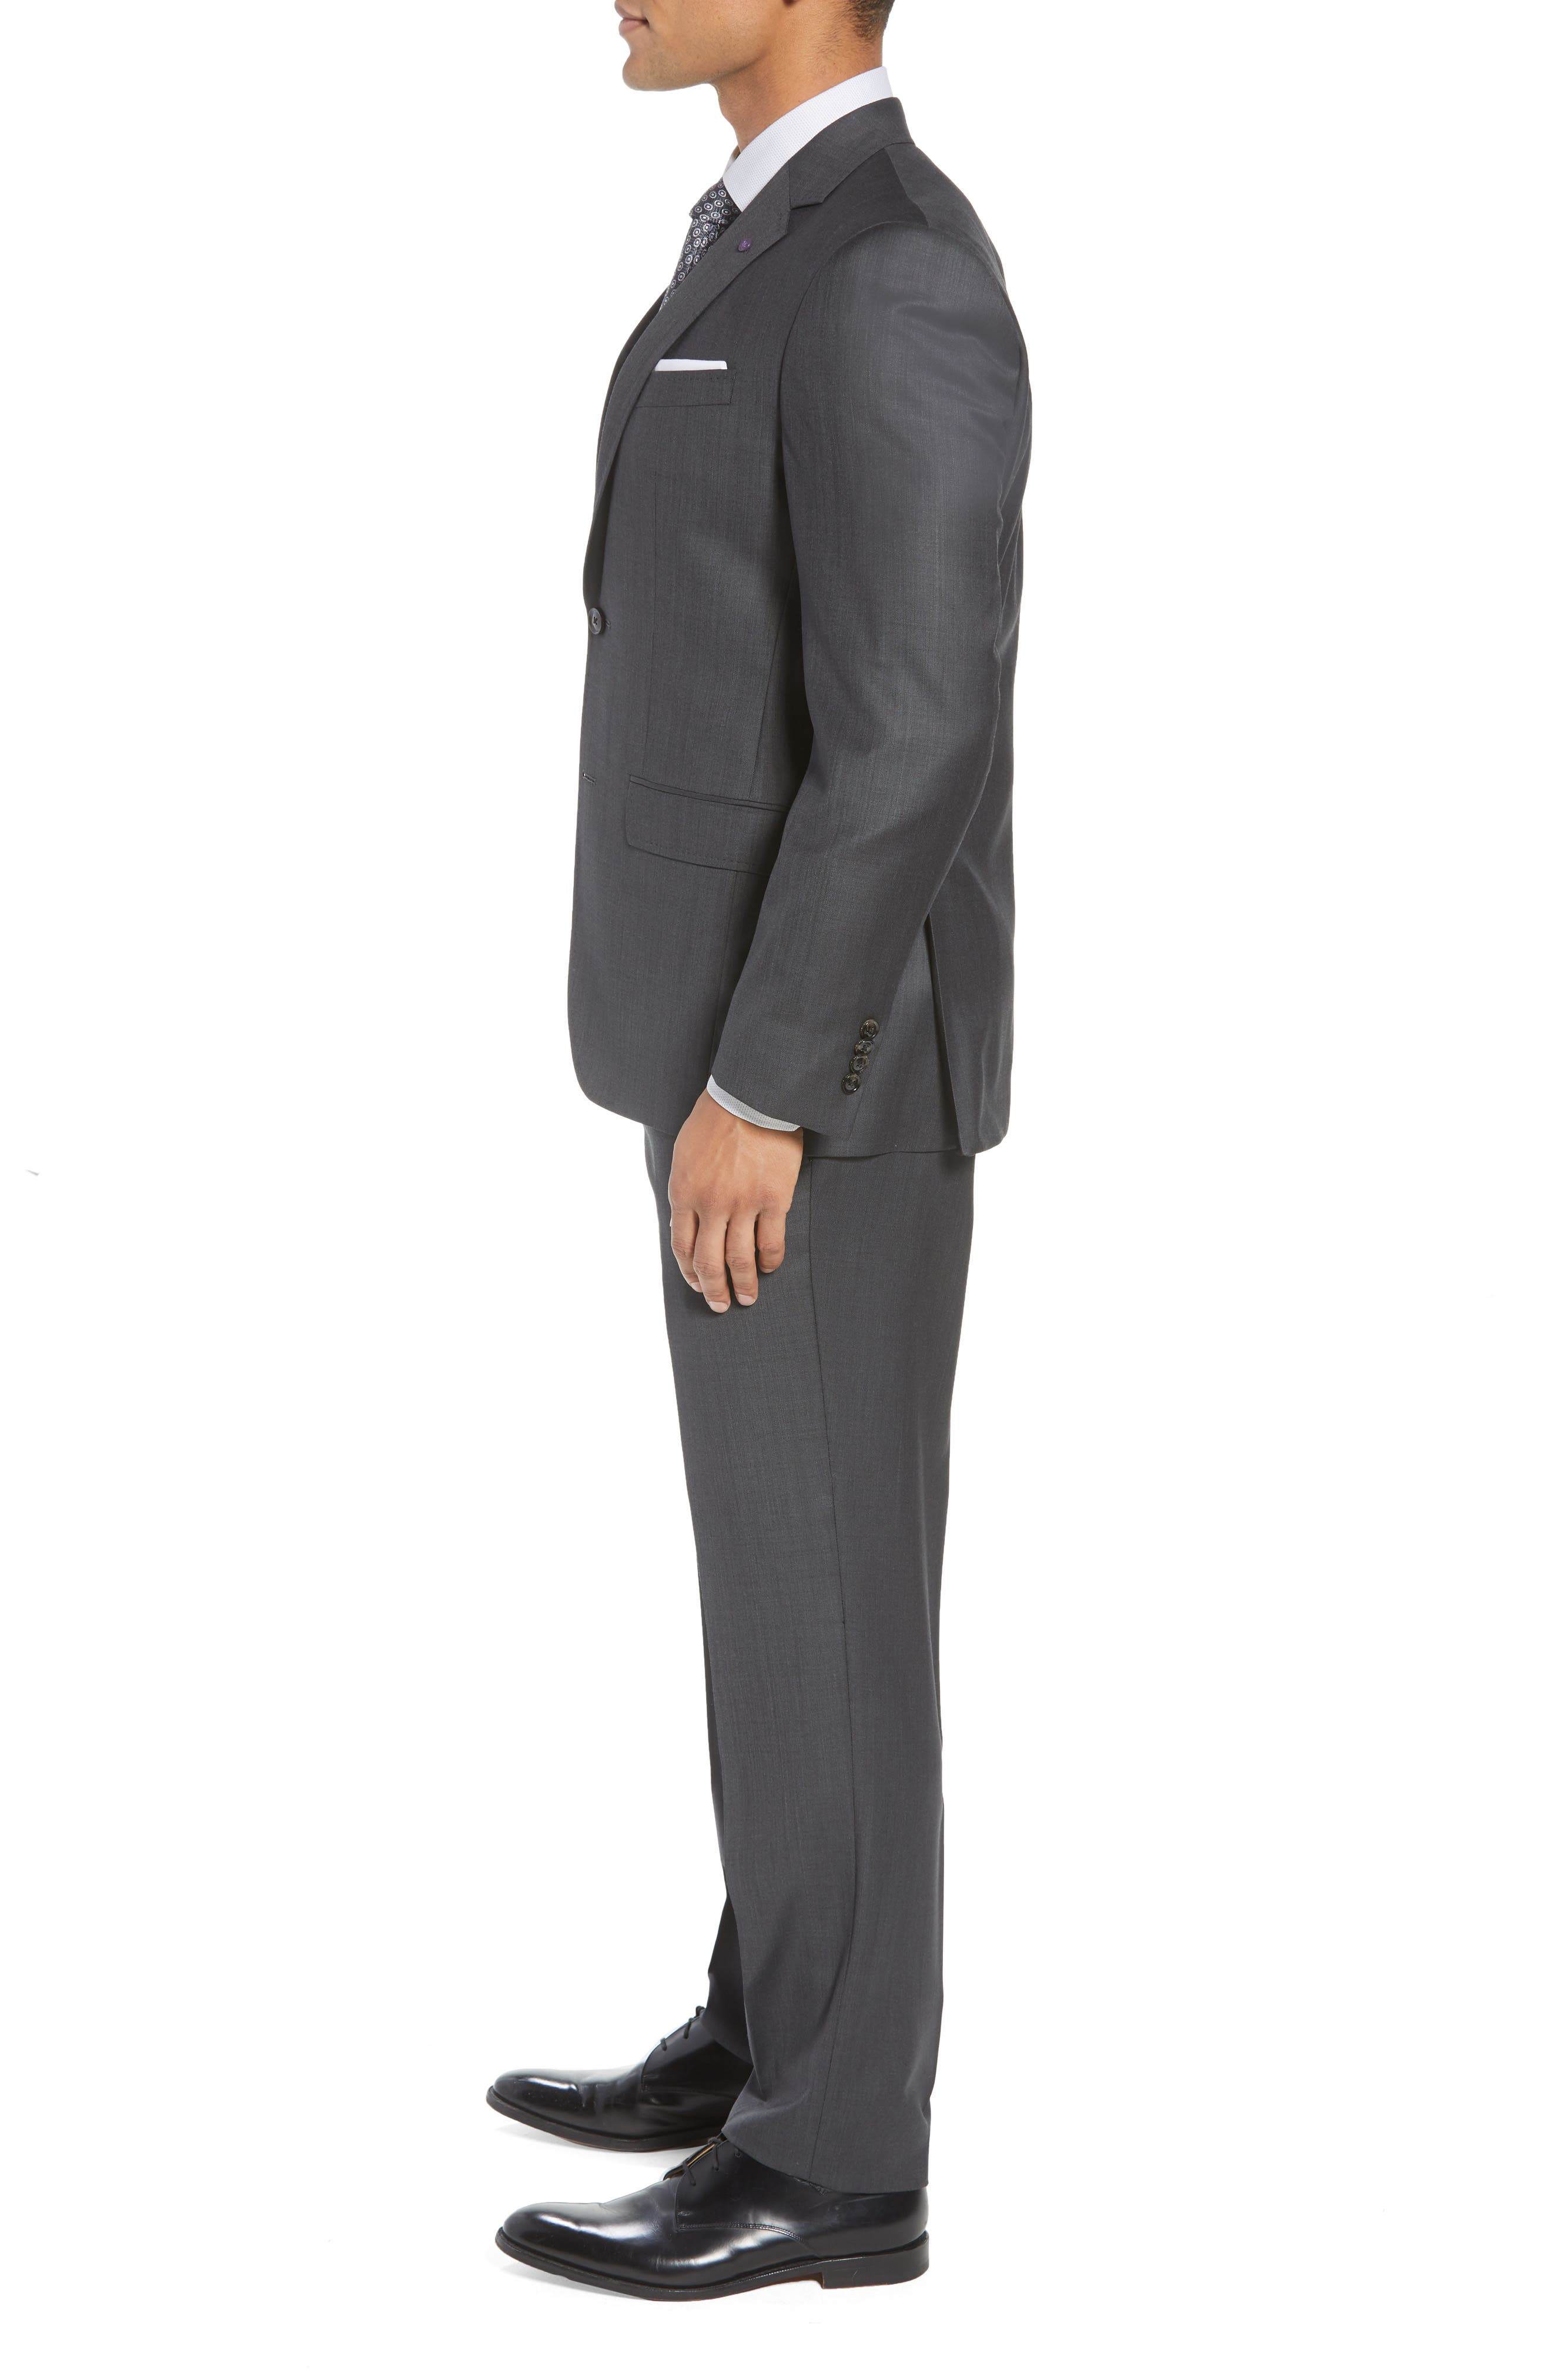 TED BAKER LONDON, Jay Trim Fit Solid Wool Suit, Alternate thumbnail 3, color, CHARCOAL